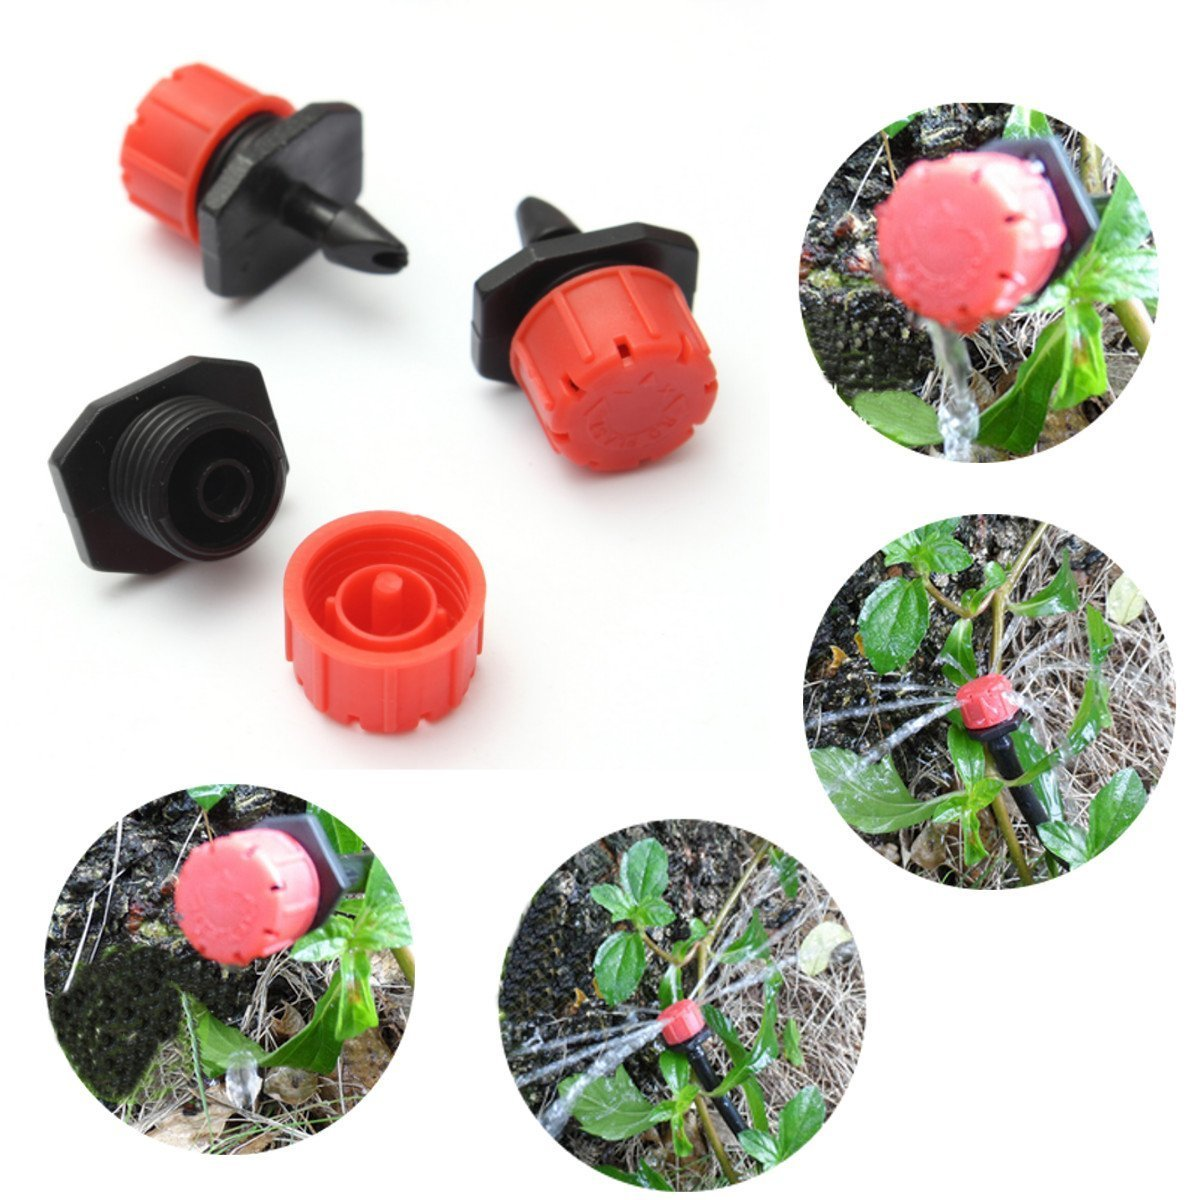 100pcs Plastic Adjustable Emitter Dripper Micro Drip Irrigation Sprinklers Watering System Md trade